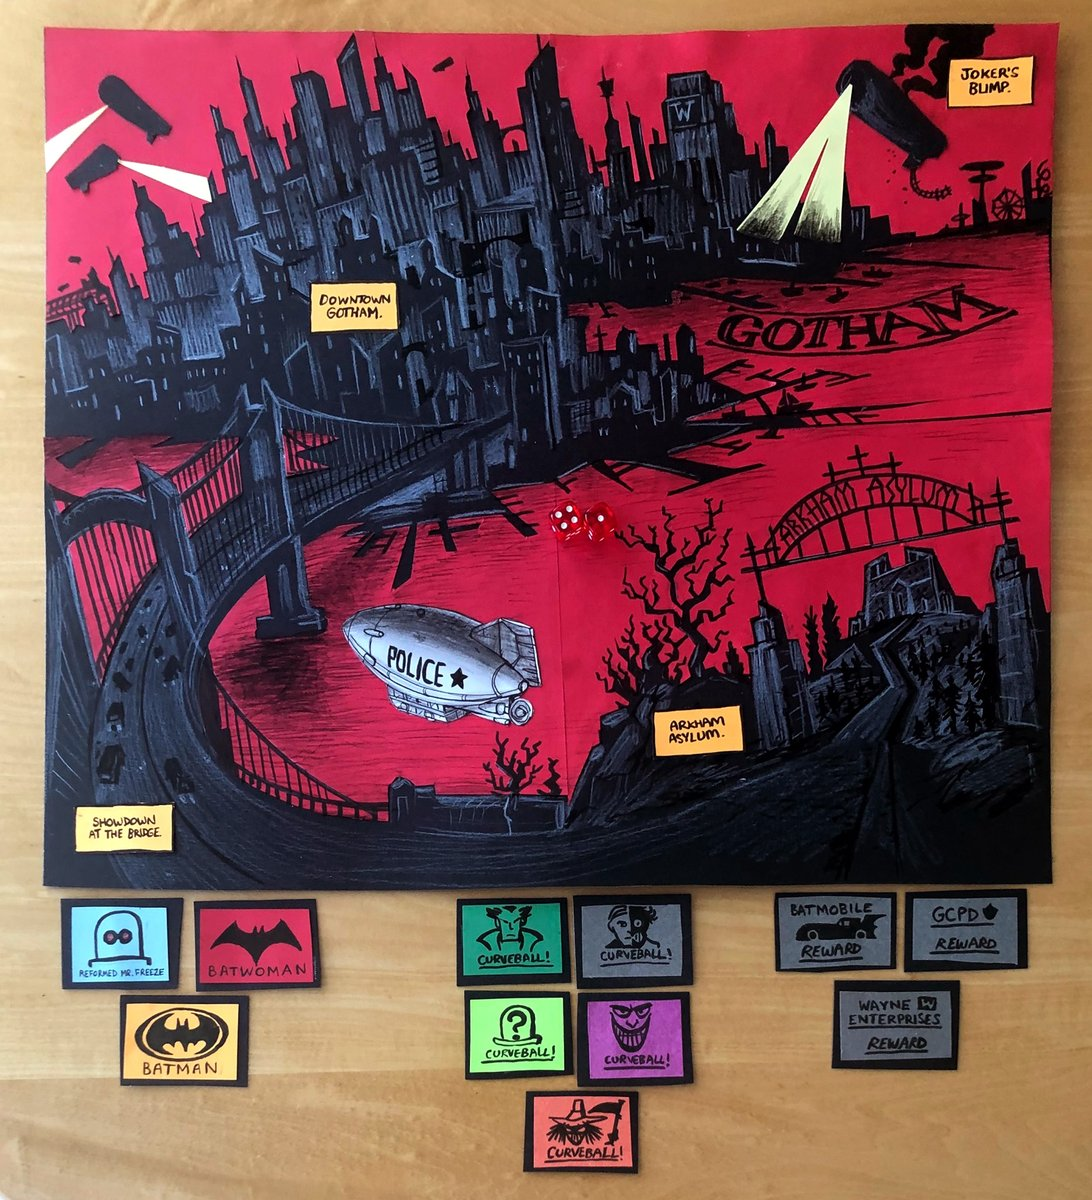 "Isolation self-horn toot: Yesterday was Zander's birthday, and we made him a board for a role-play game based on the aesthetic of ""Batman: The Animated Series"". Cut out of black card, a la Bruce Timm, and of course the Two-Face curveball card is 50/50 odds on the dice. #Story pic.twitter.com/A6UDiZxF90"